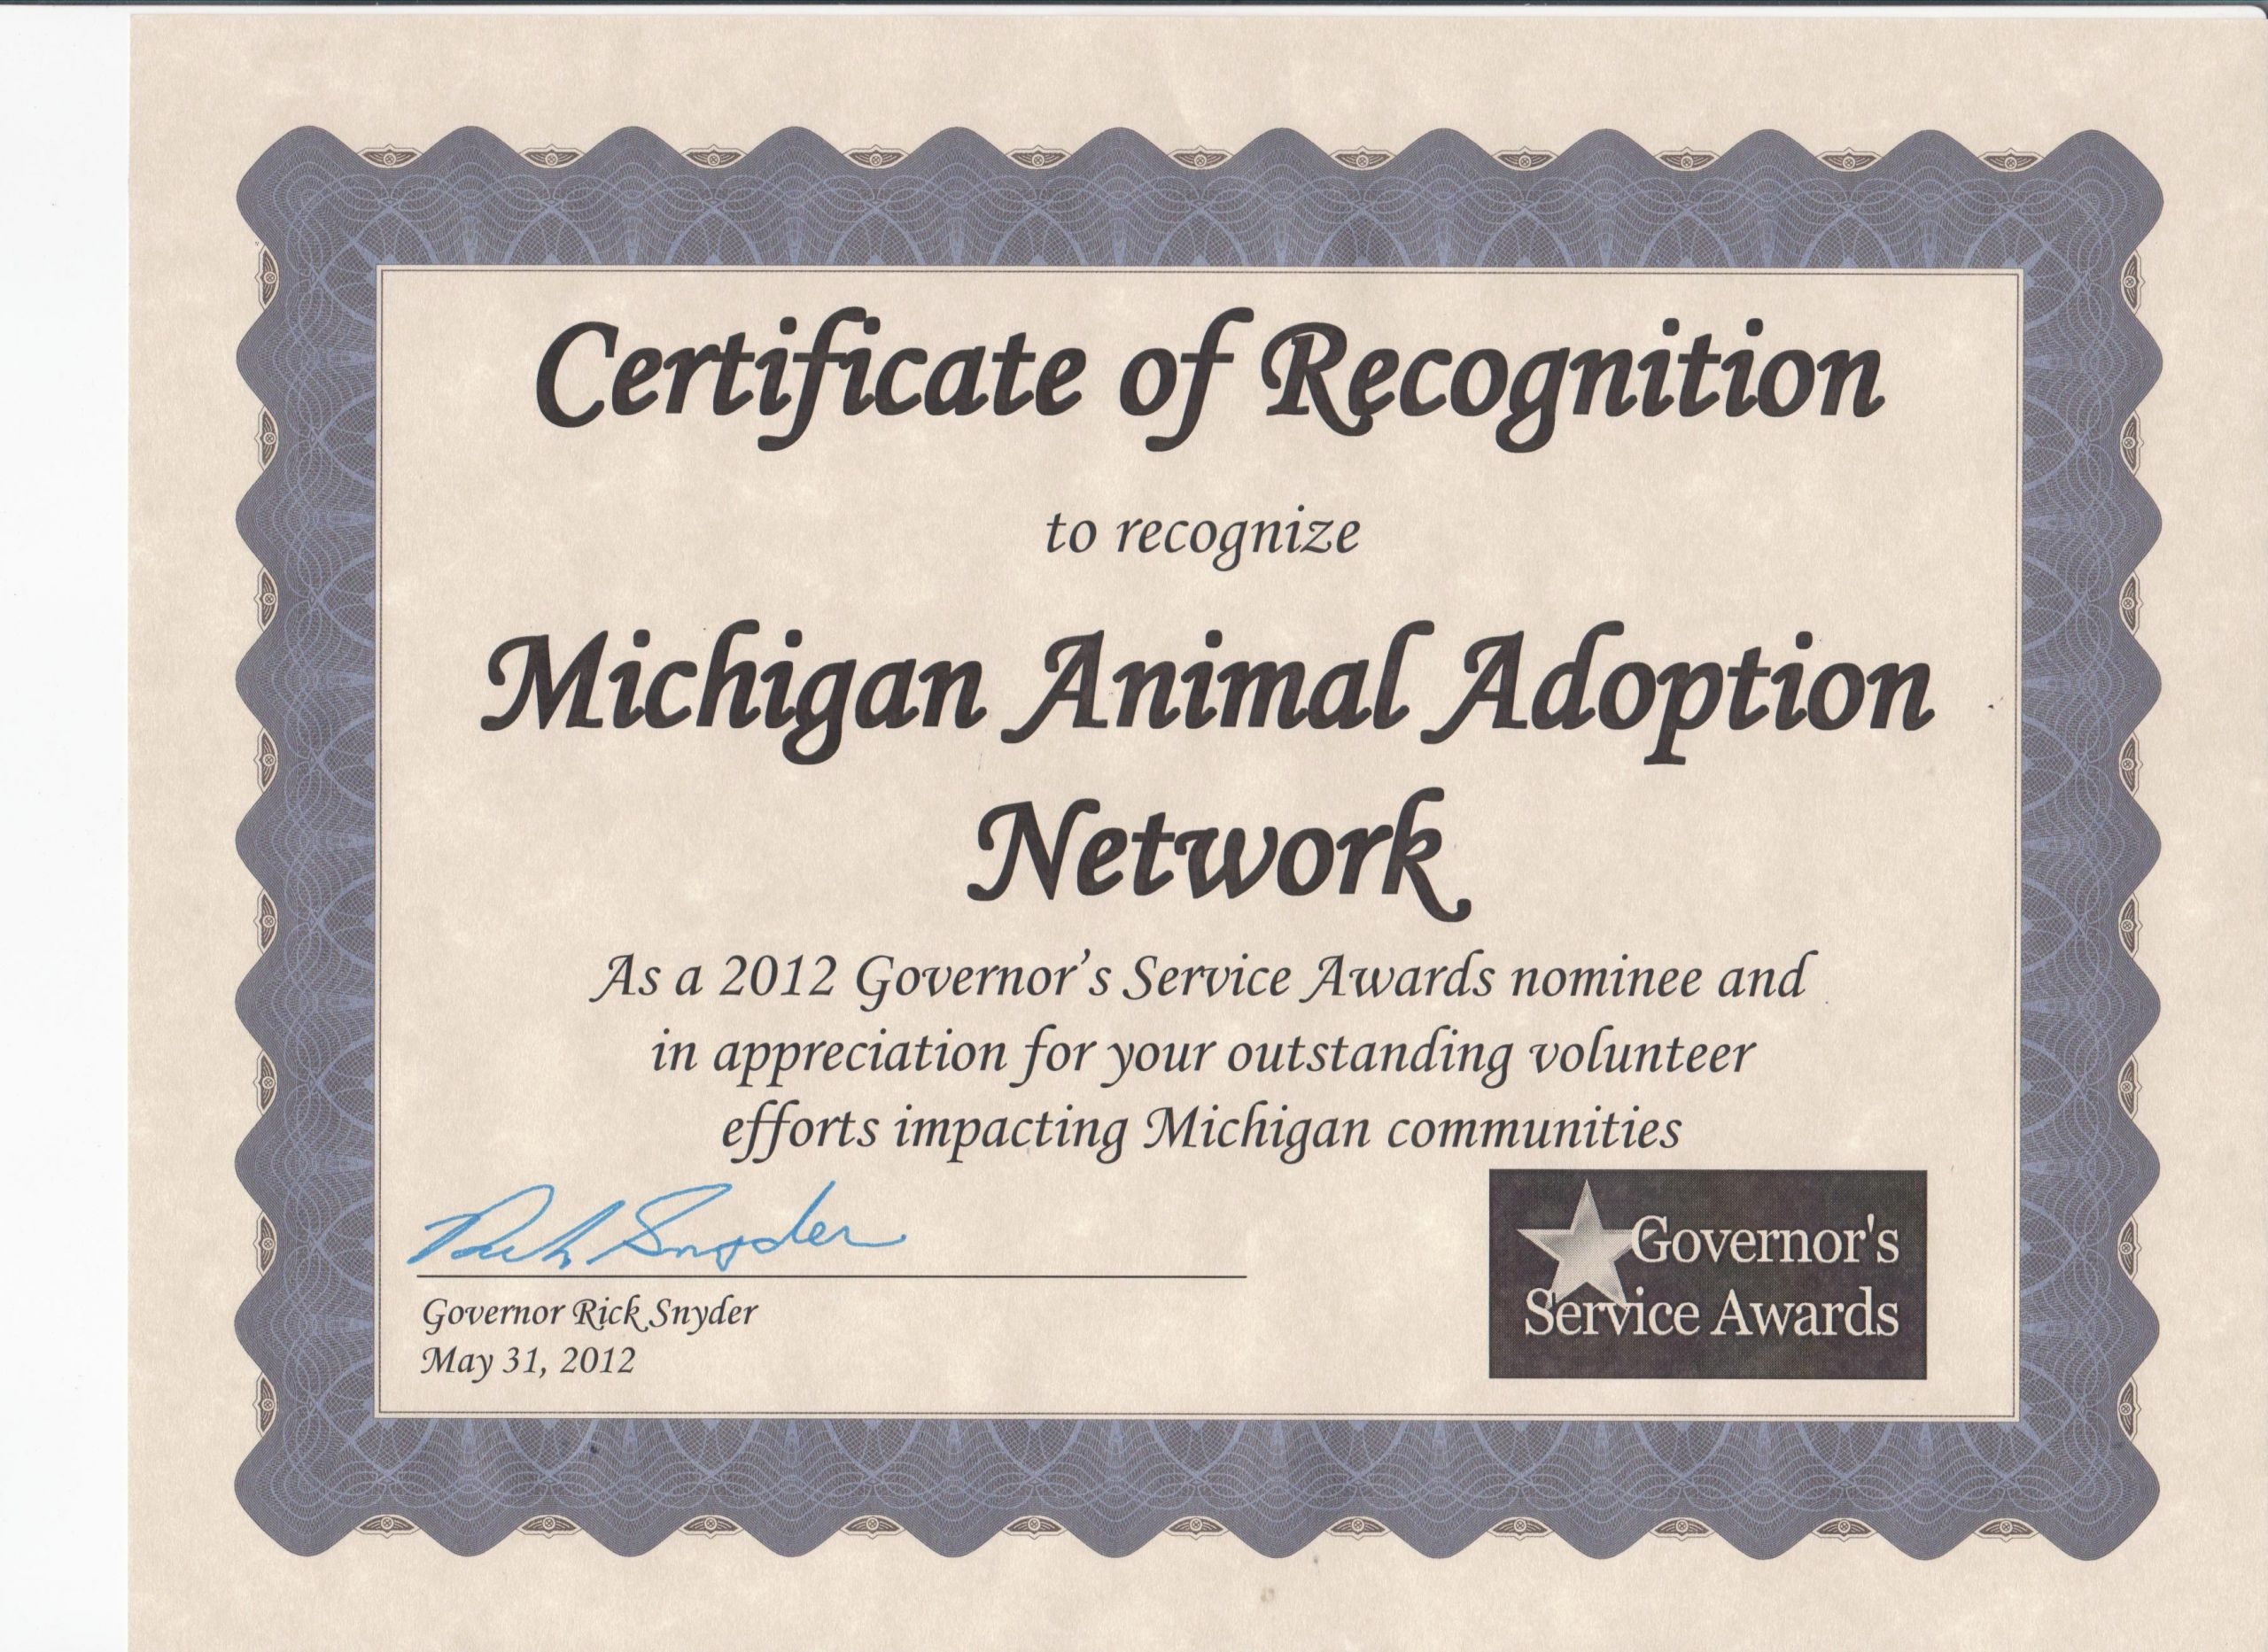 Spay Neuter Certificate Template Elegant Awards Certificates and Nominations Michigan Animal